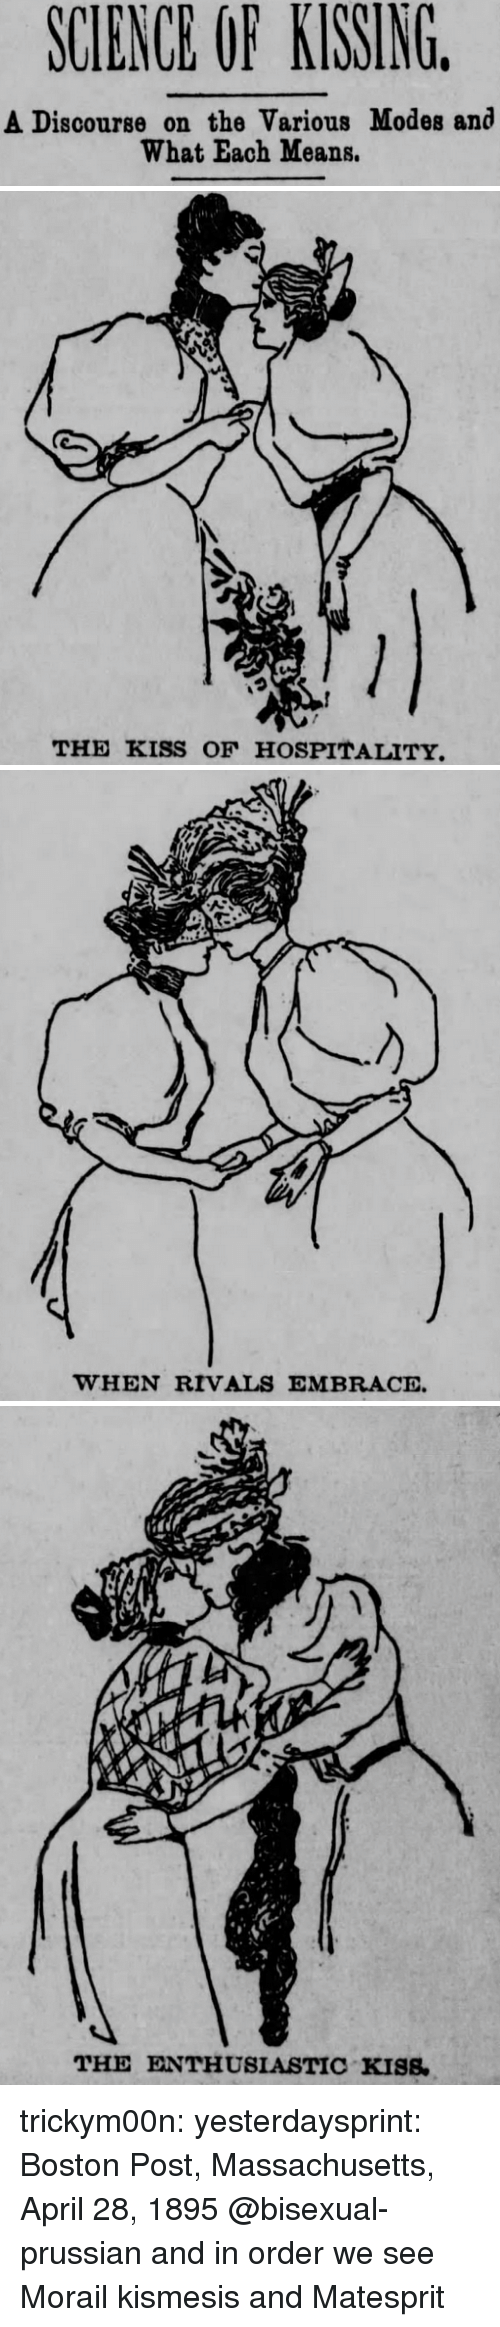 hospitality: SCIENCE OF KISSING  A Discourse on the Various Modes and  What Each Means.   っ  THE KISS OF HOSPITALITY   WHEN RIVALS EMBRACE   THE ENTHUSIASTIC KISS. trickym00n:  yesterdaysprint:  Boston Post, Massachusetts, April 28, 1895  @bisexual-prussian and in order we see Morail kismesis and Matesprit